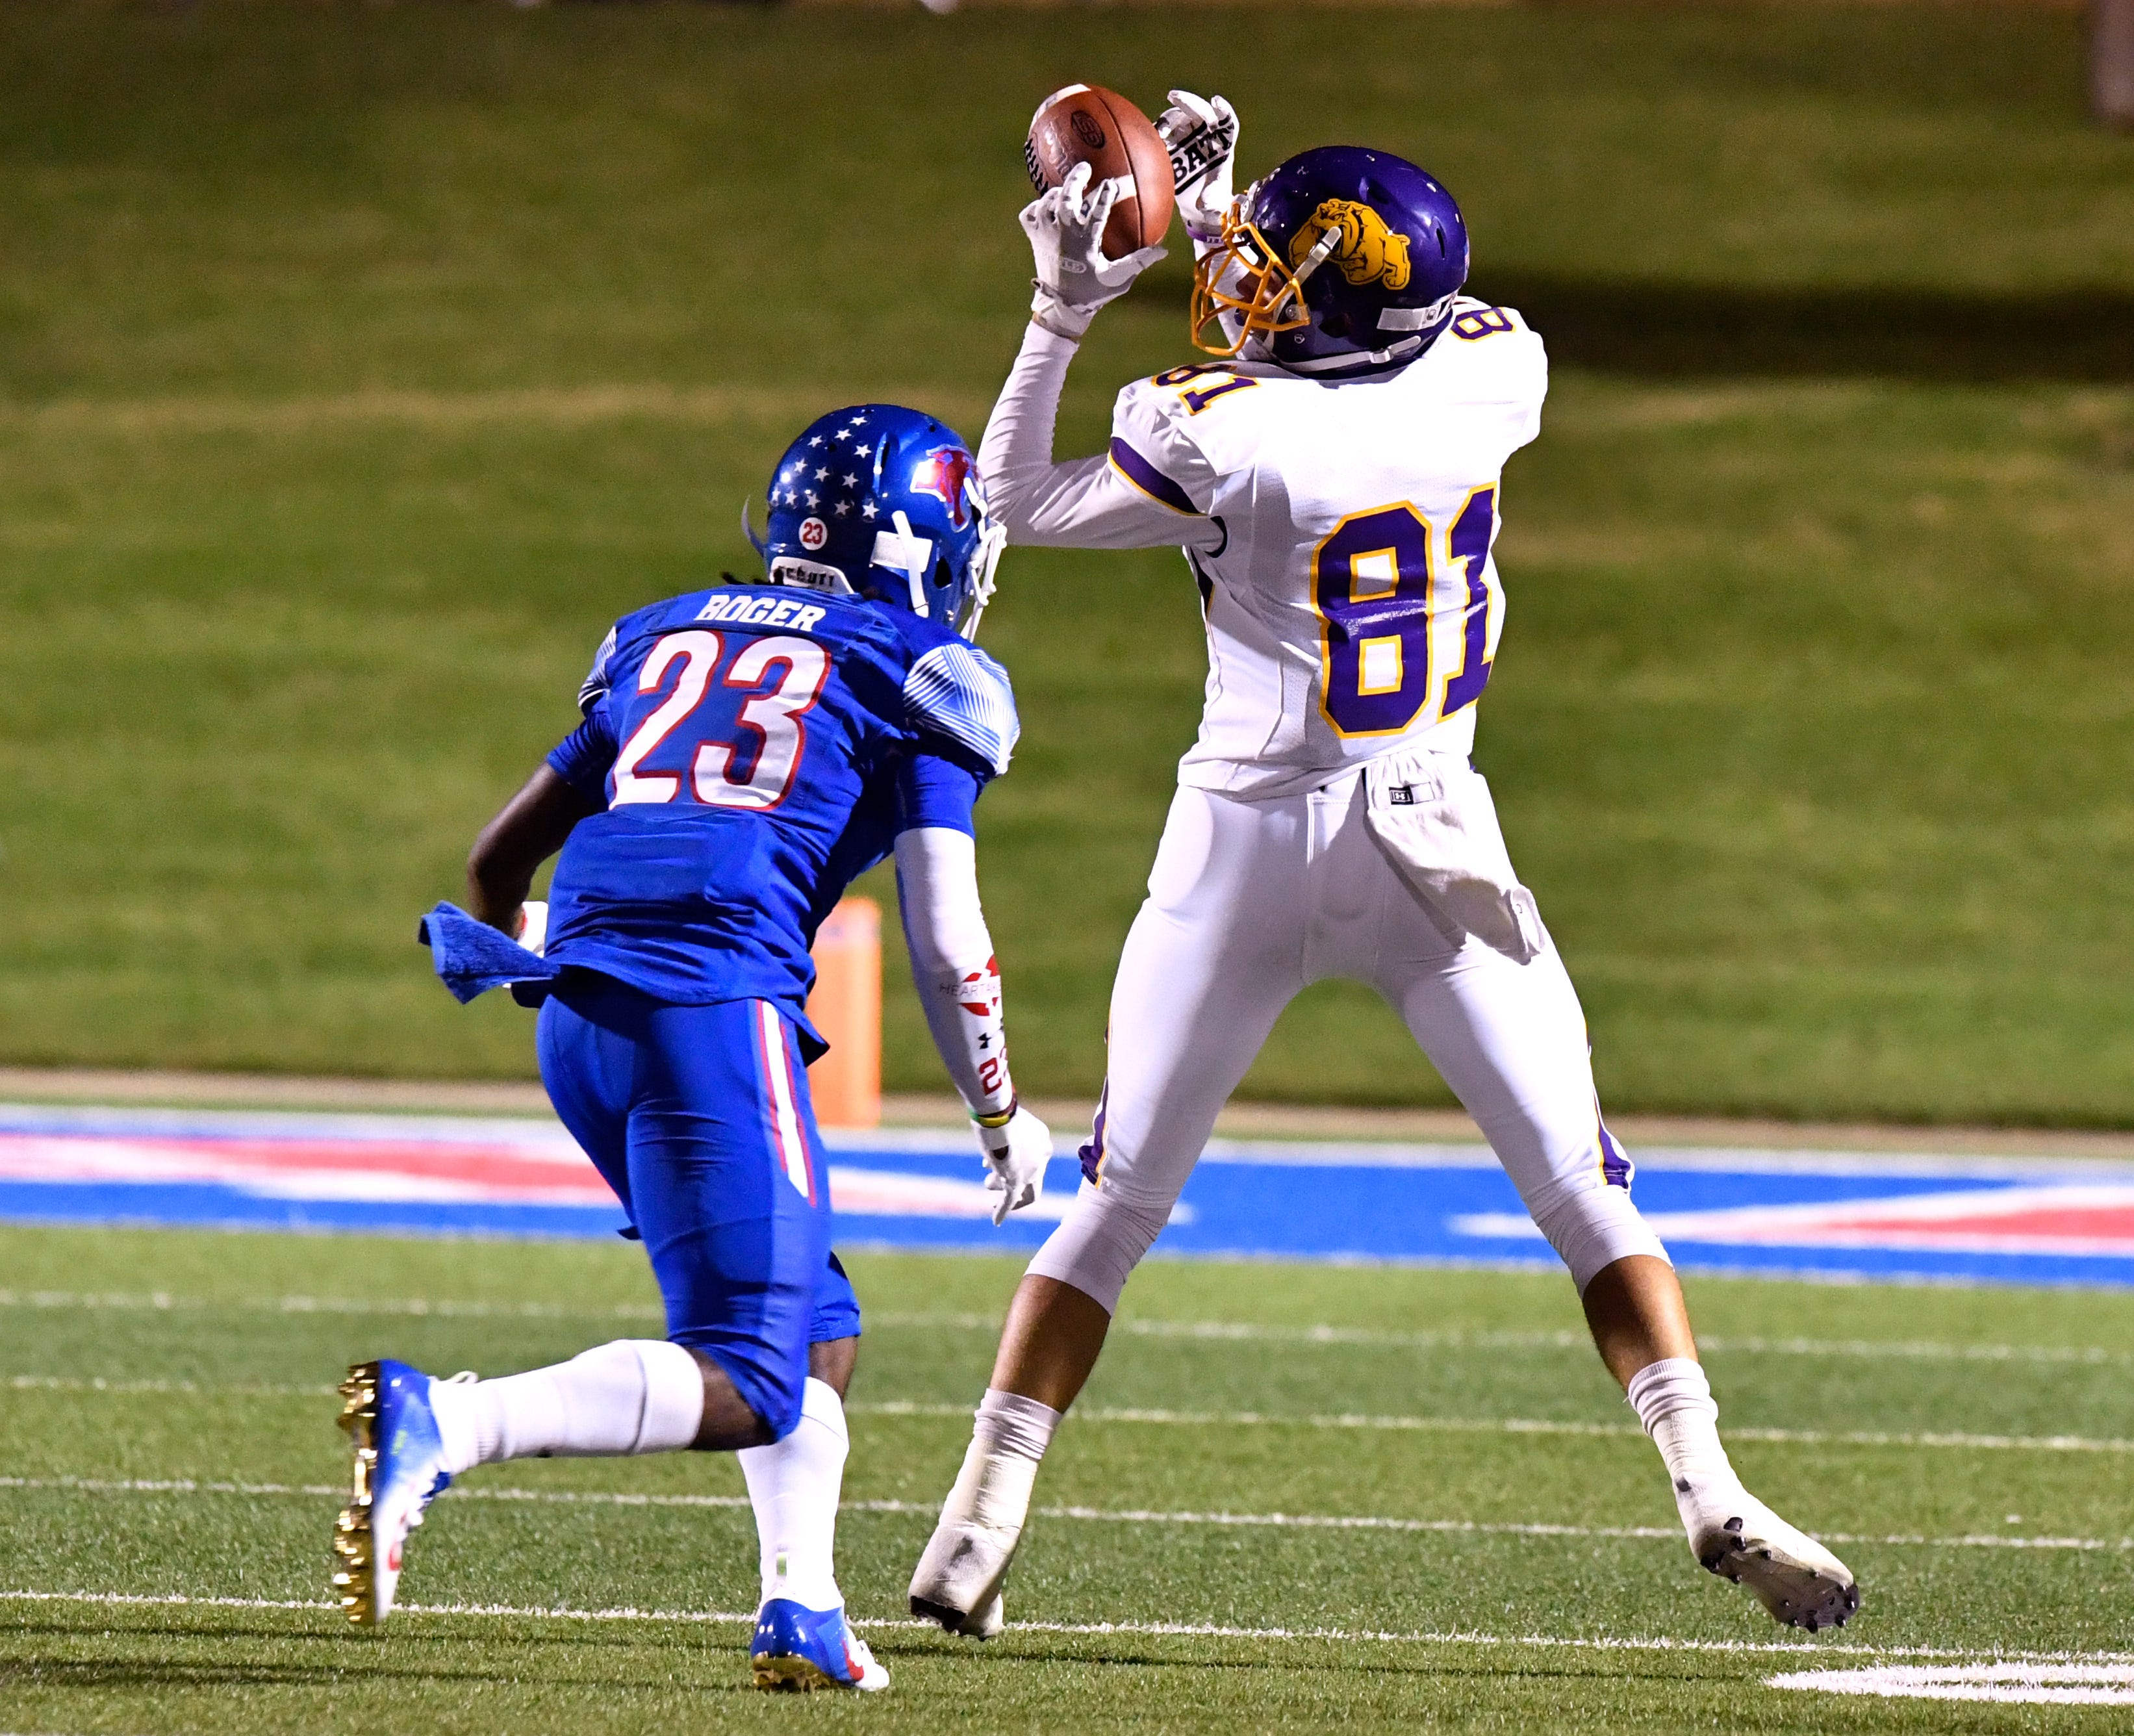 Wylie wide receiver Hayden Keidl completes a pass as Cooper defensive back Roderick Boger tries to cover him. Cooper and Wylie high schools faced each other for the first time Thursday Sept. 20, 2018 for the Southtown Showdown at Shotwell Stadium. Cooper won, 48-0.